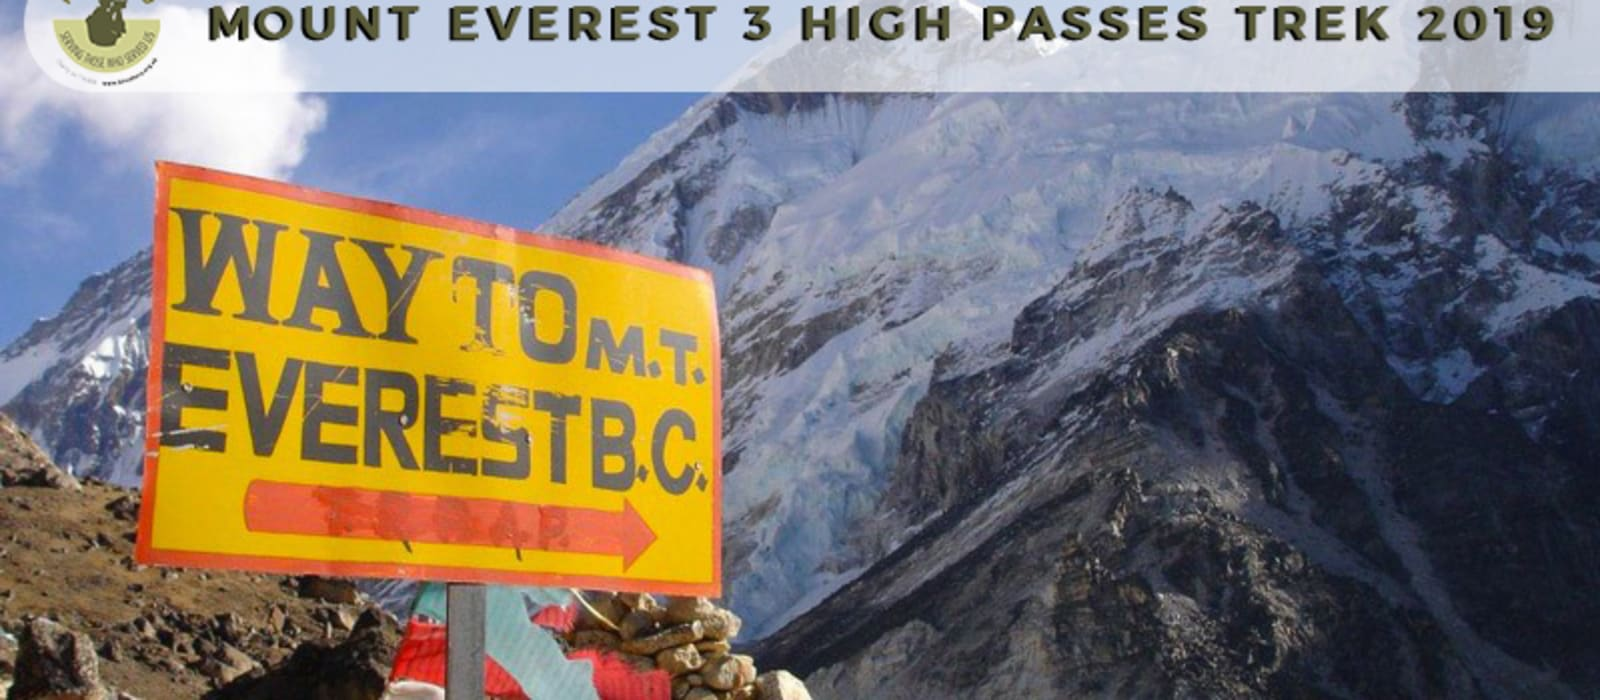 Everest 3 High Passes Trek 2019